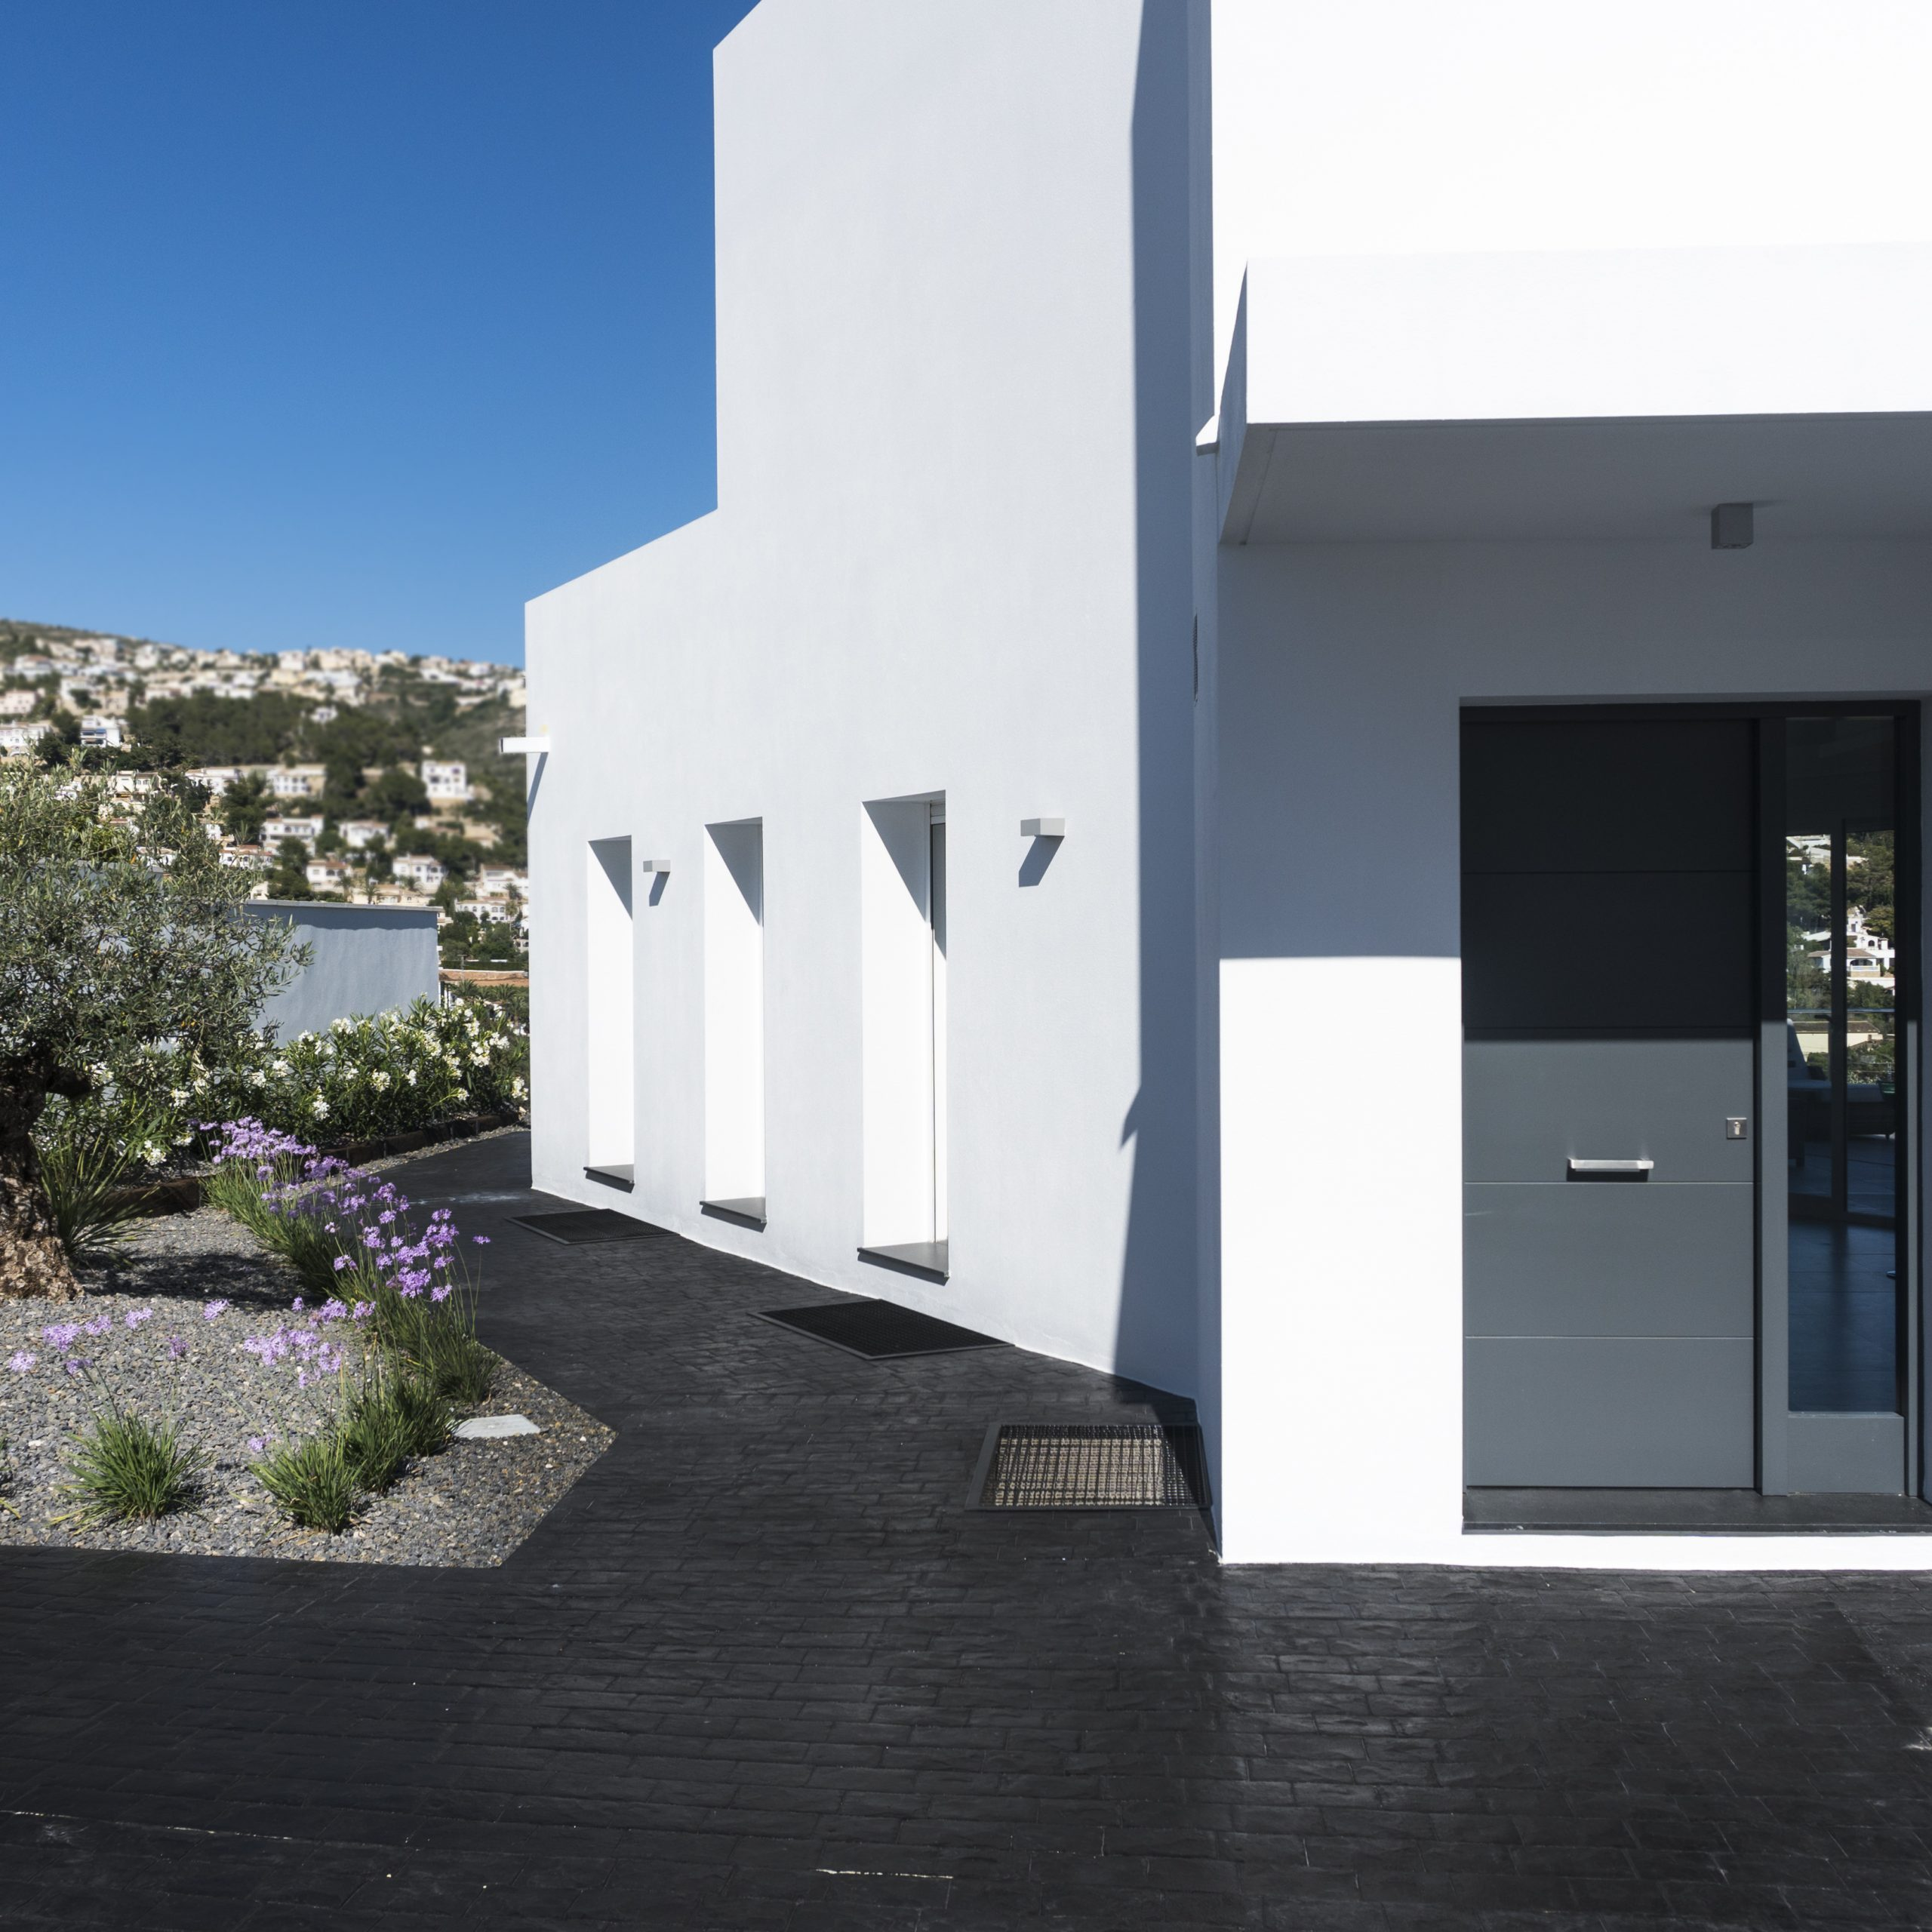 Arquifach: Architectural Studio in Alicante present: Villa Sabana - Detached house with swimming pool located within urbanization